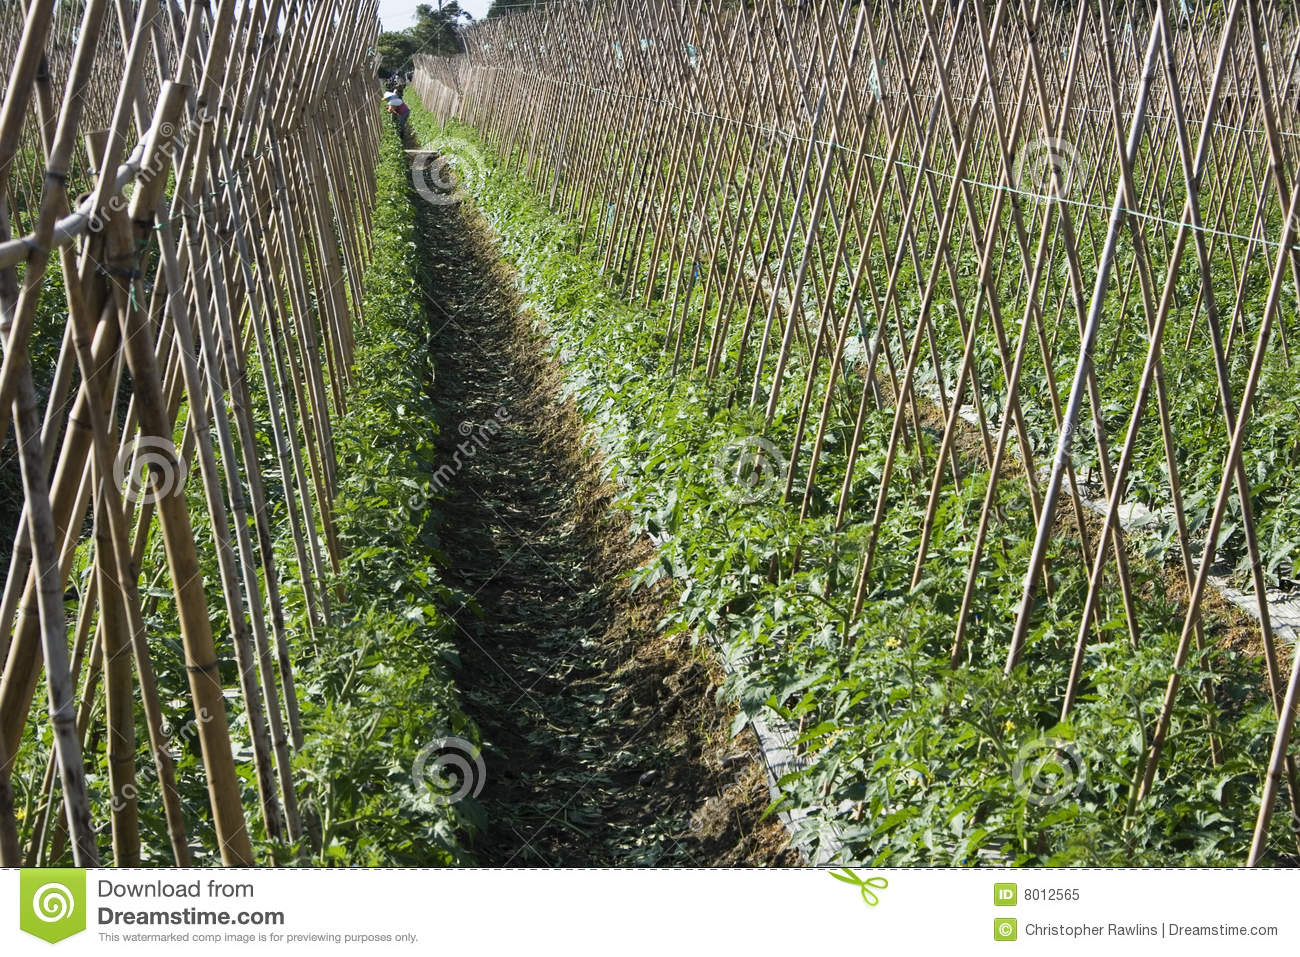 X Rows >> Tomato field stock image. Image of agriculture, health - 8012565